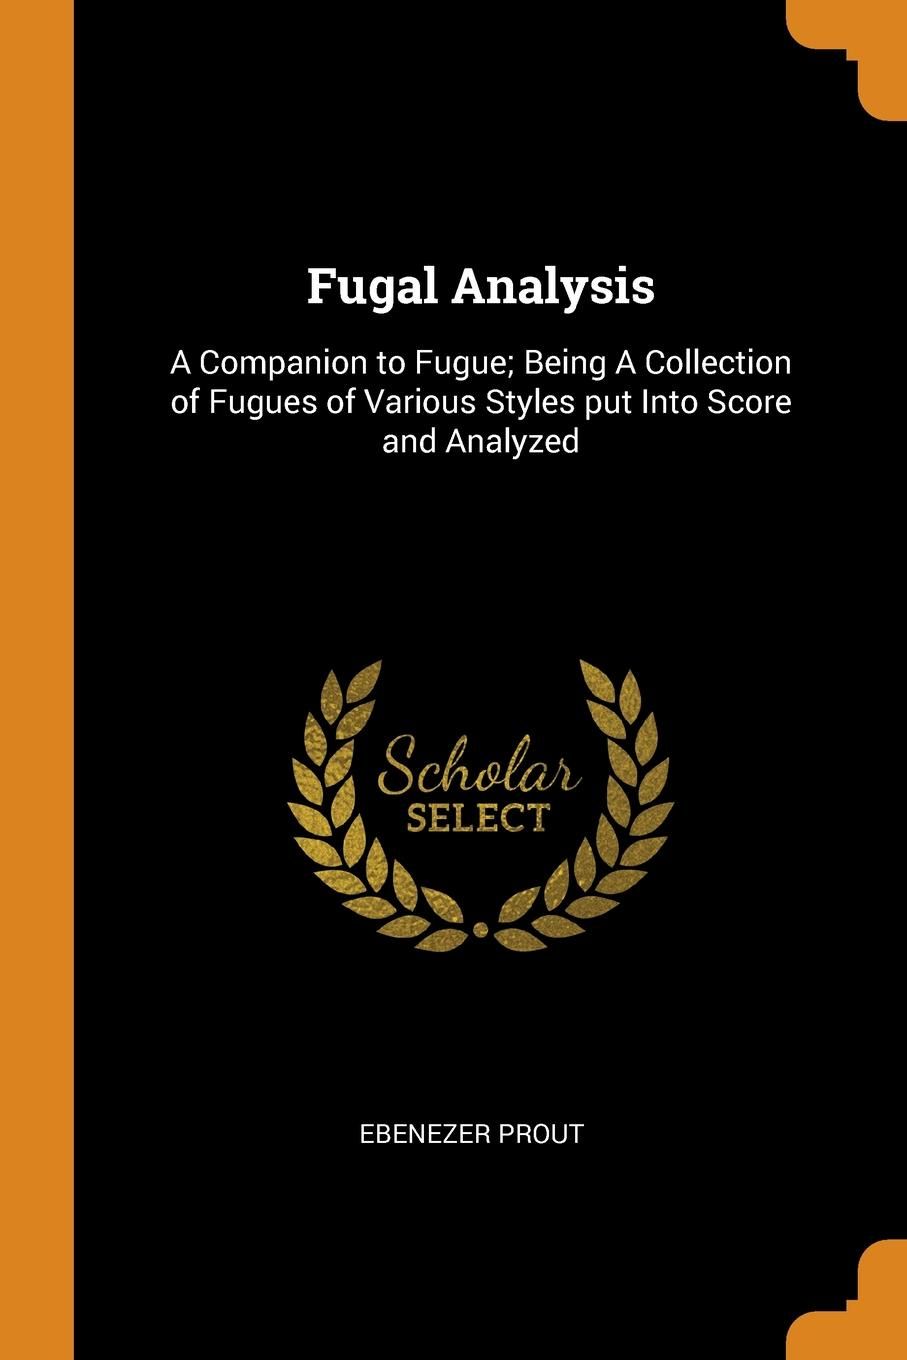 Ebenezer Prout. Fugal Analysis. A Companion to Fugue; Being A Collection of Fugues of Various Styles put Into Score and Analyzed